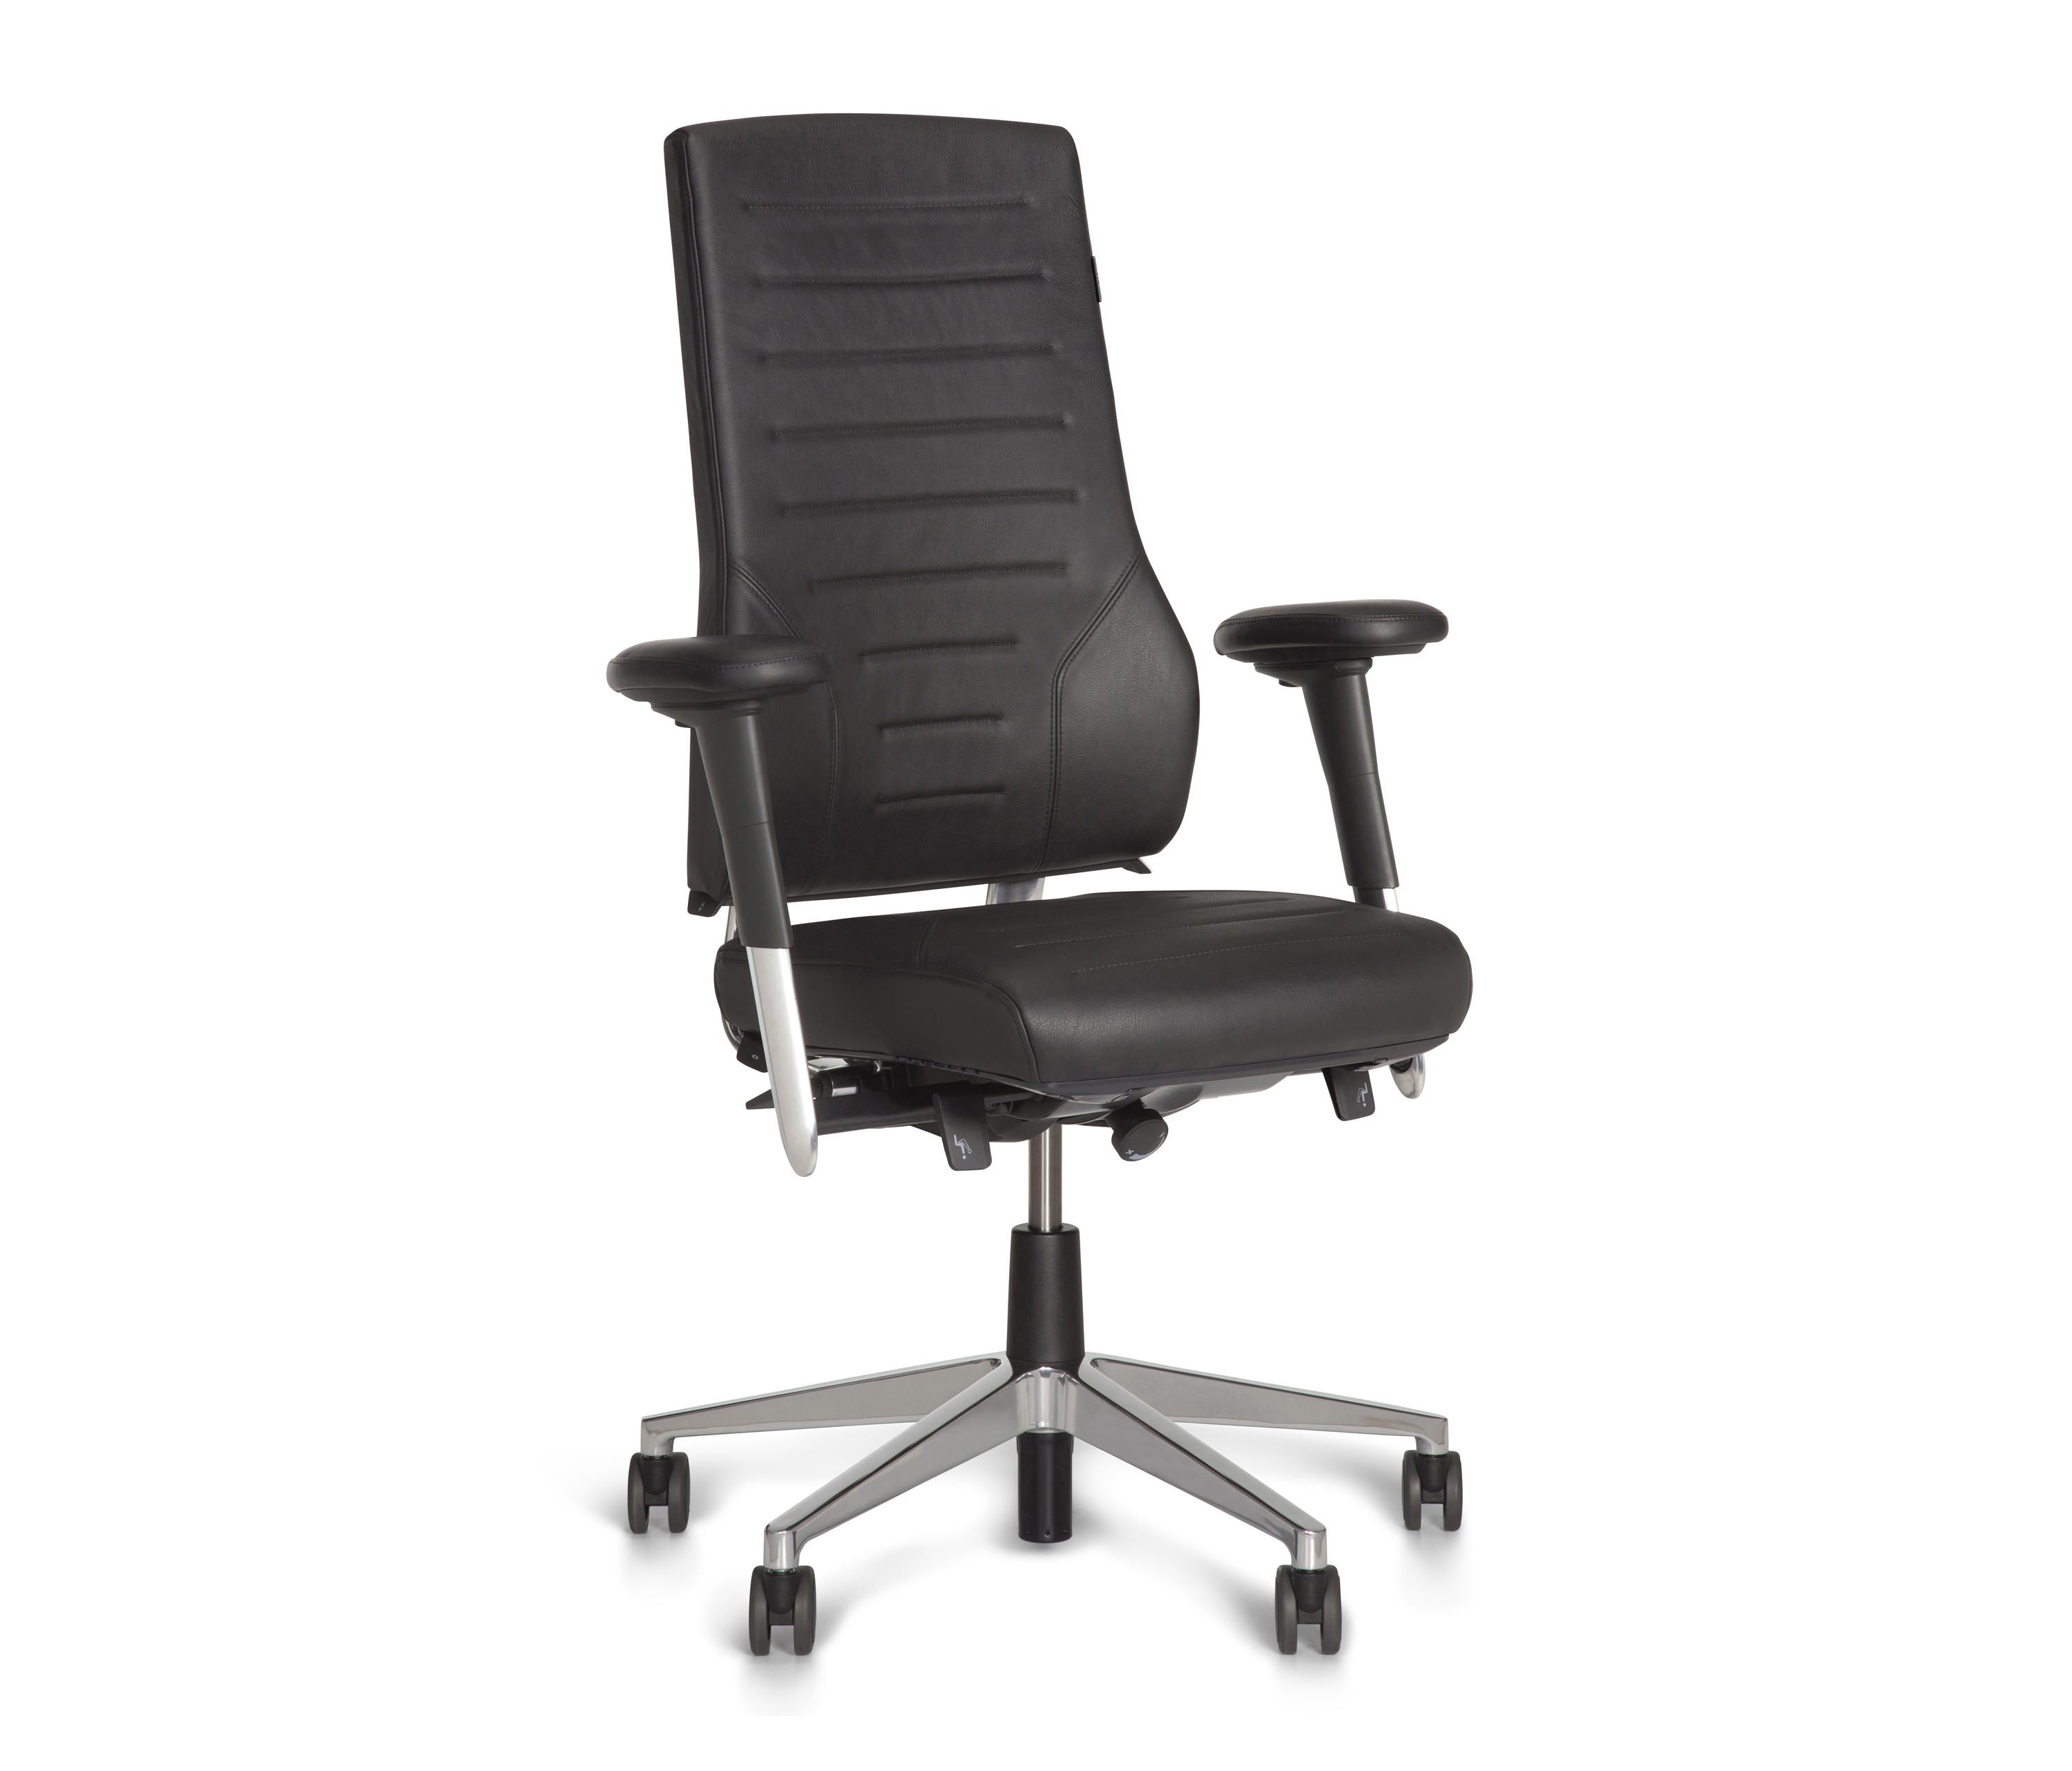 ... BMA Axia Vision 24/7 by Flokk | Office chairs ...  sc 1 st  Architonic & BMA AXIA VISION 24/7 - Office chairs from Flokk | Architonic